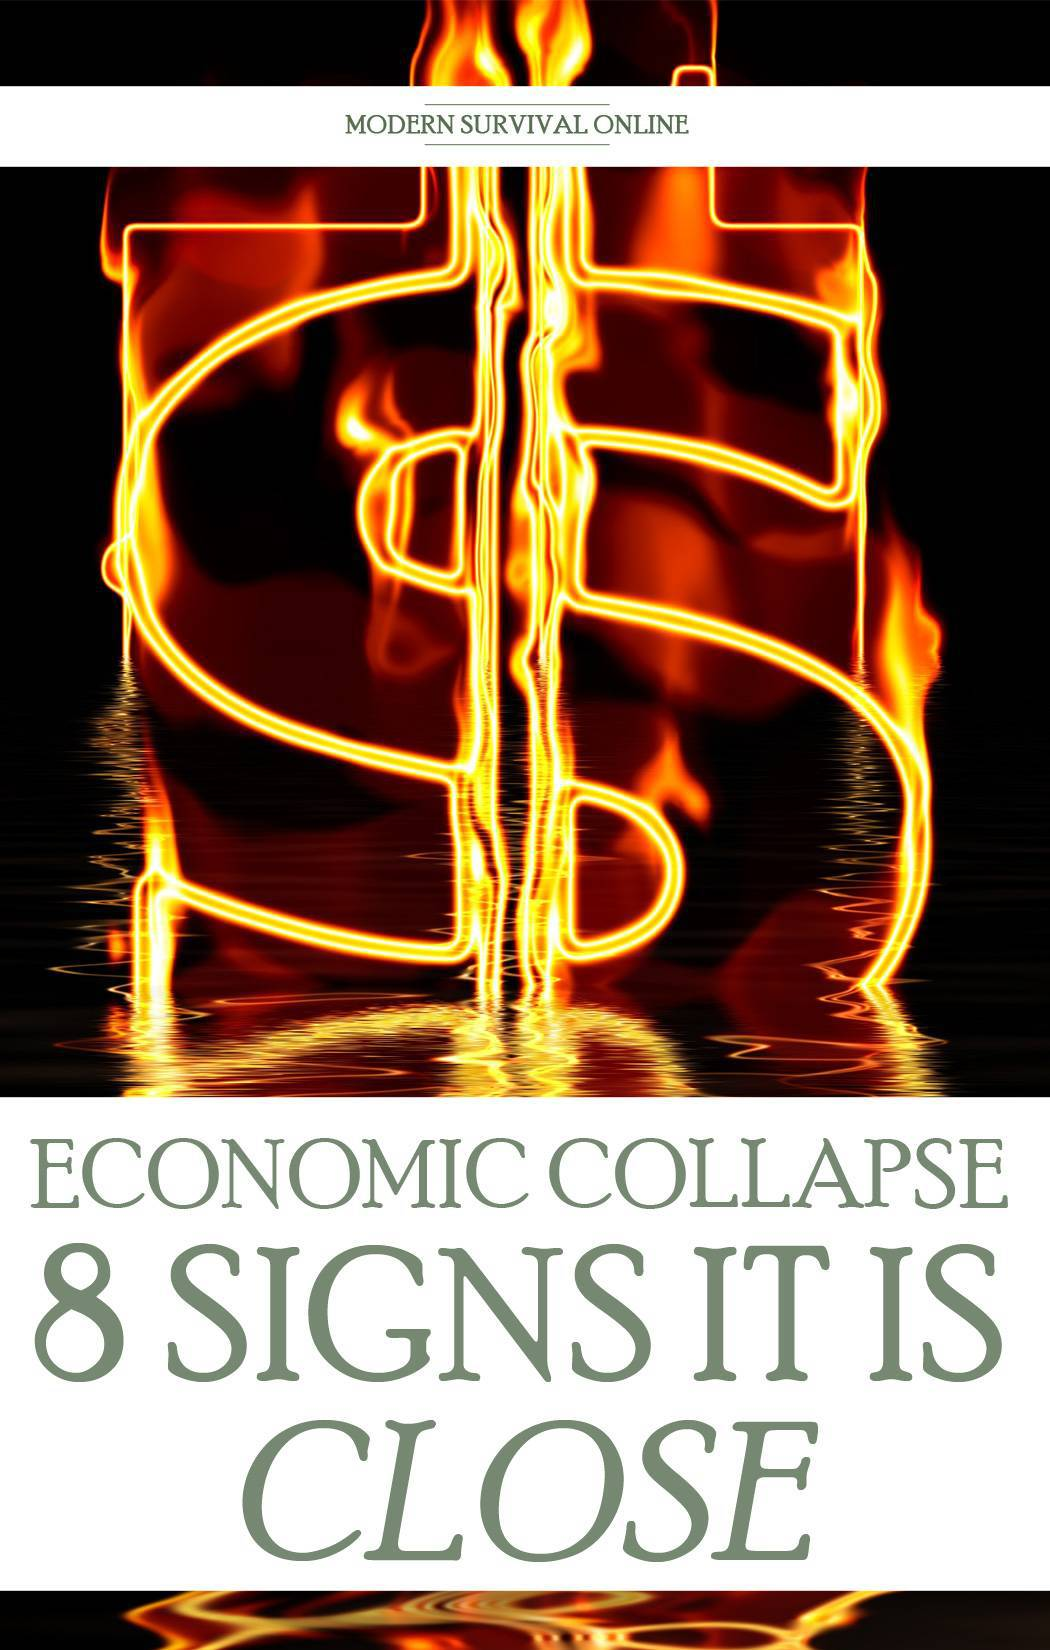 signs of economic collapse pinterest